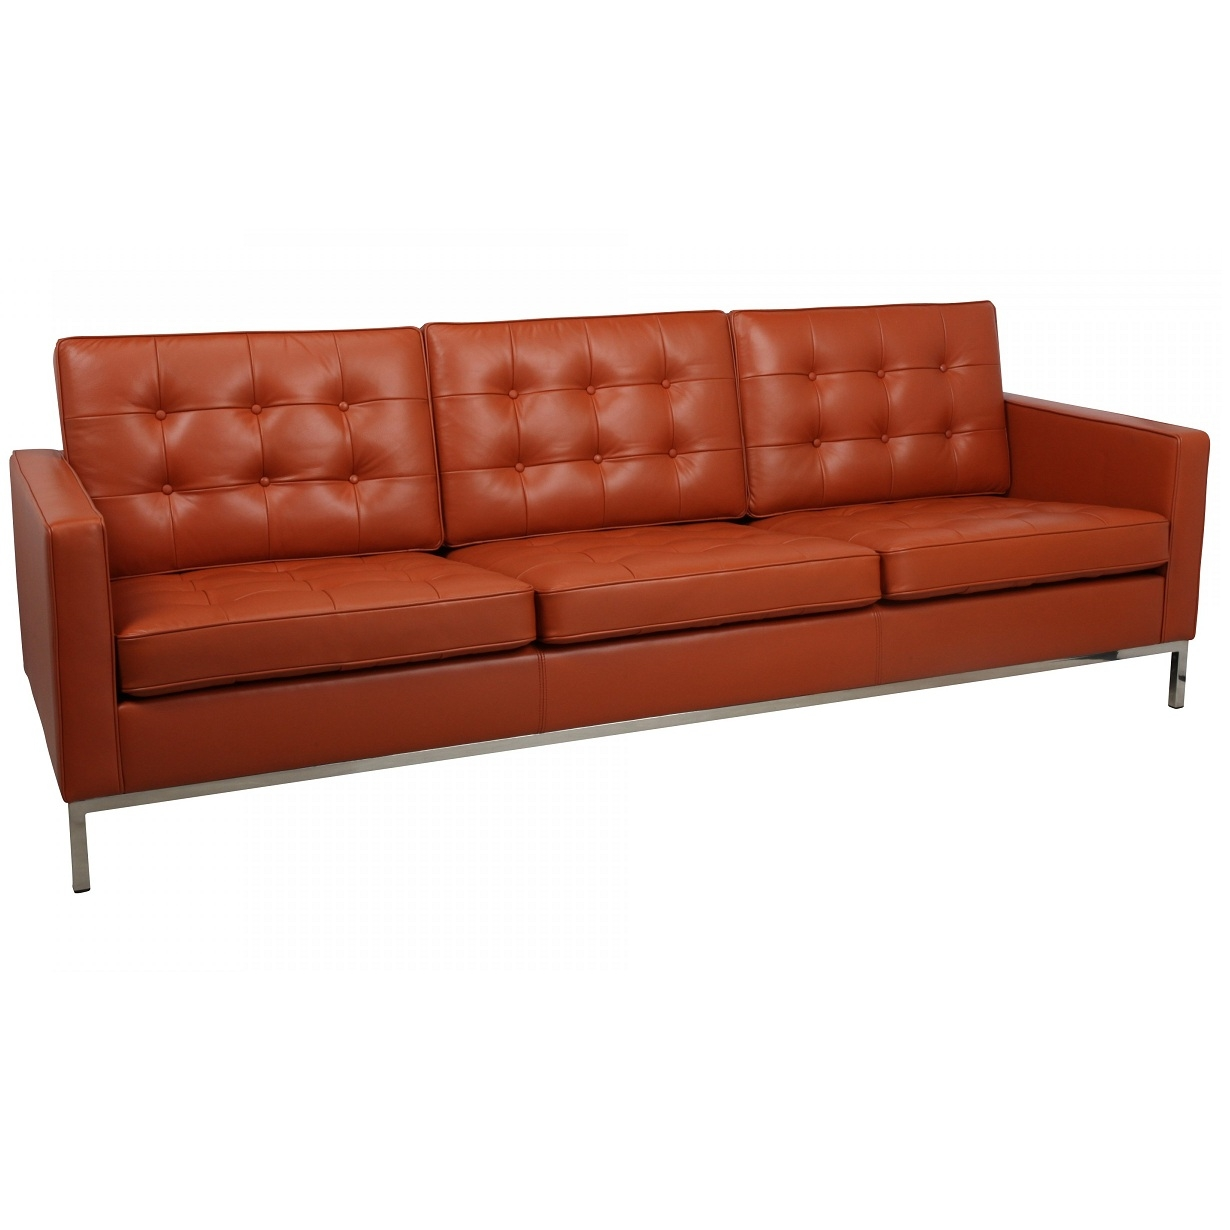 Aniline Leather Florence Knoll 3 Seat Sofa Next Day Delivery In Florence Knoll Leather Sofas (View 2 of 15)